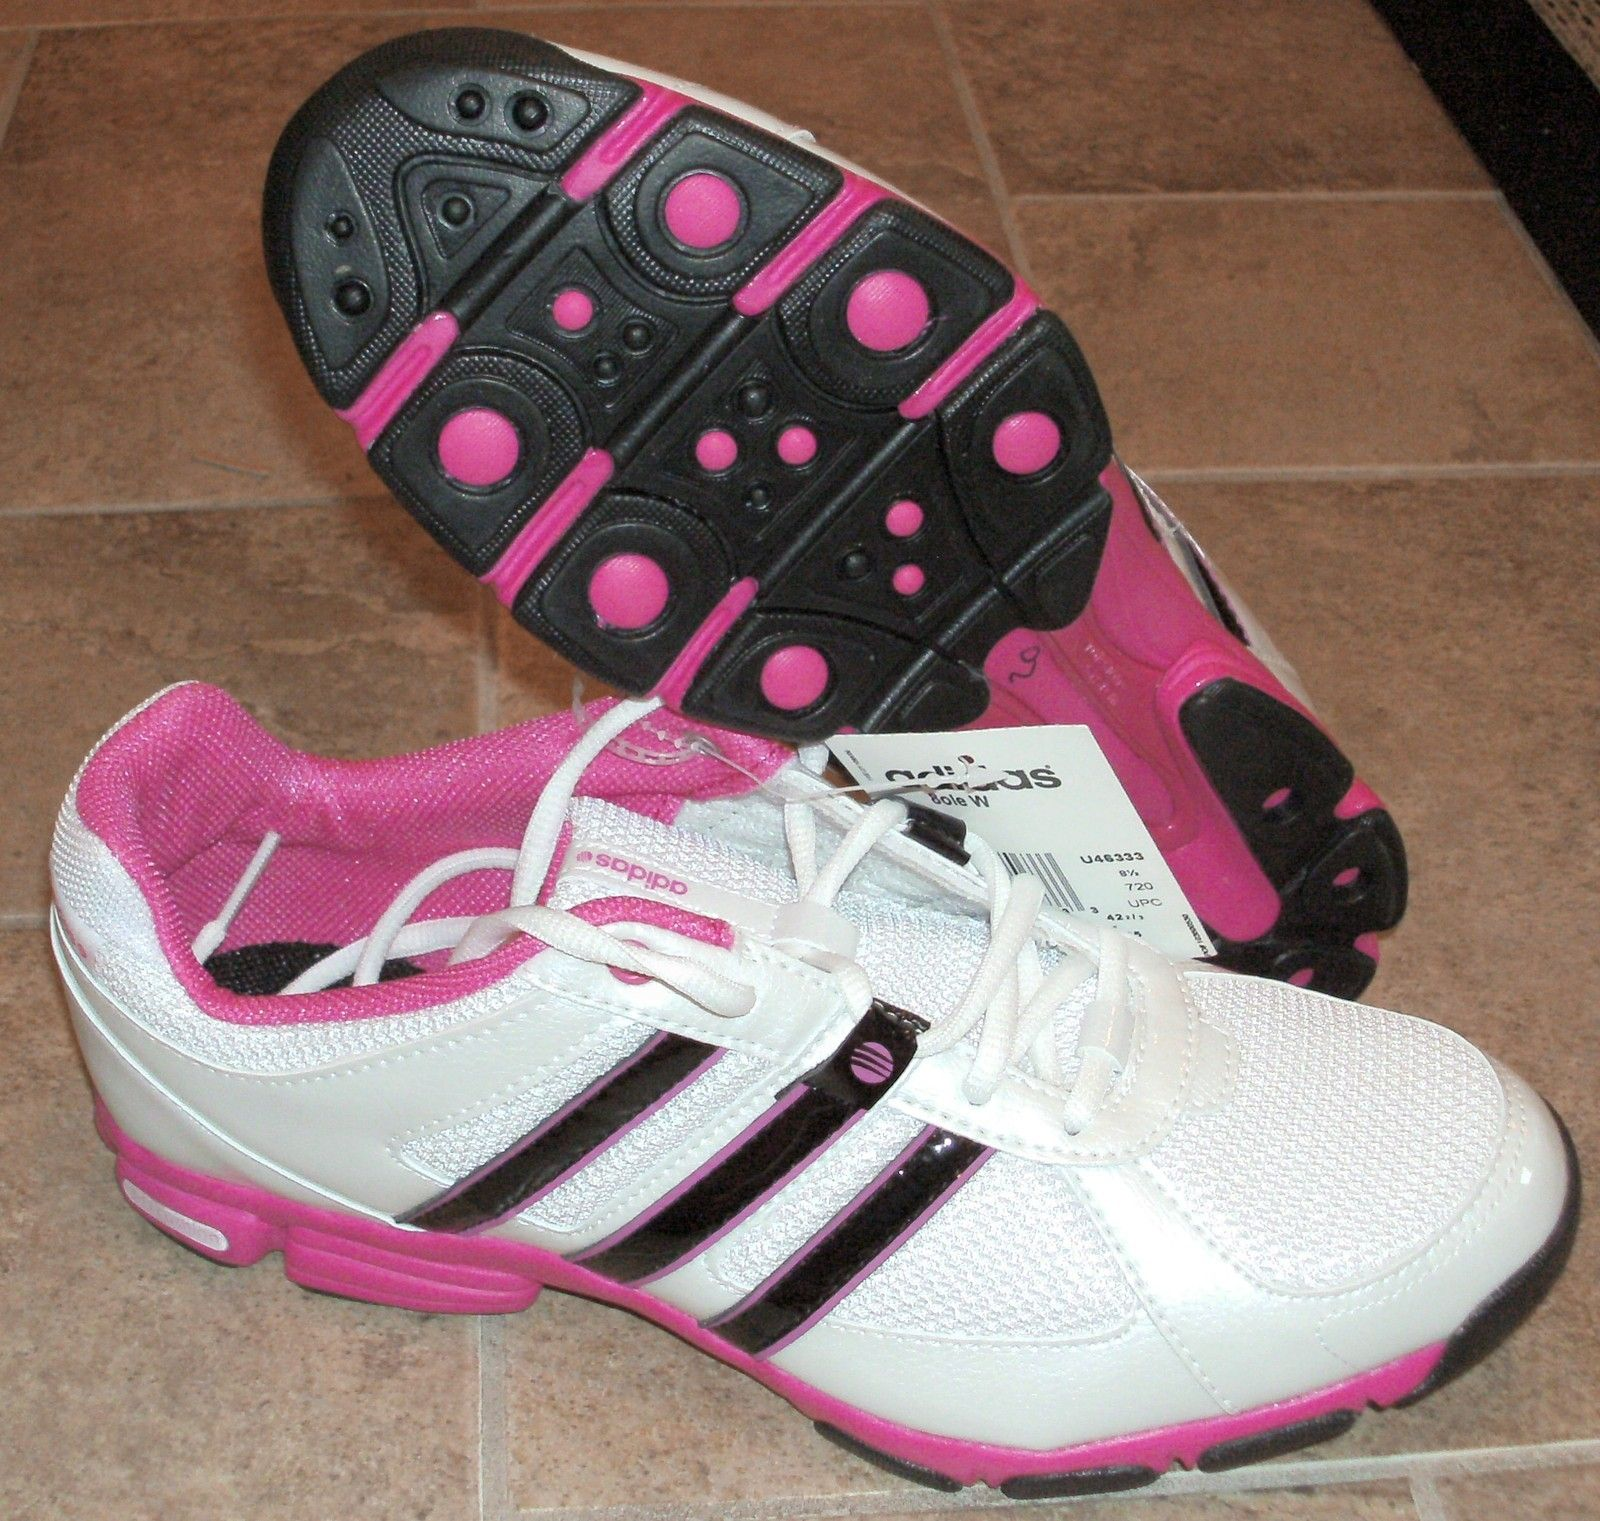 My adidas dance shoes.for zumba